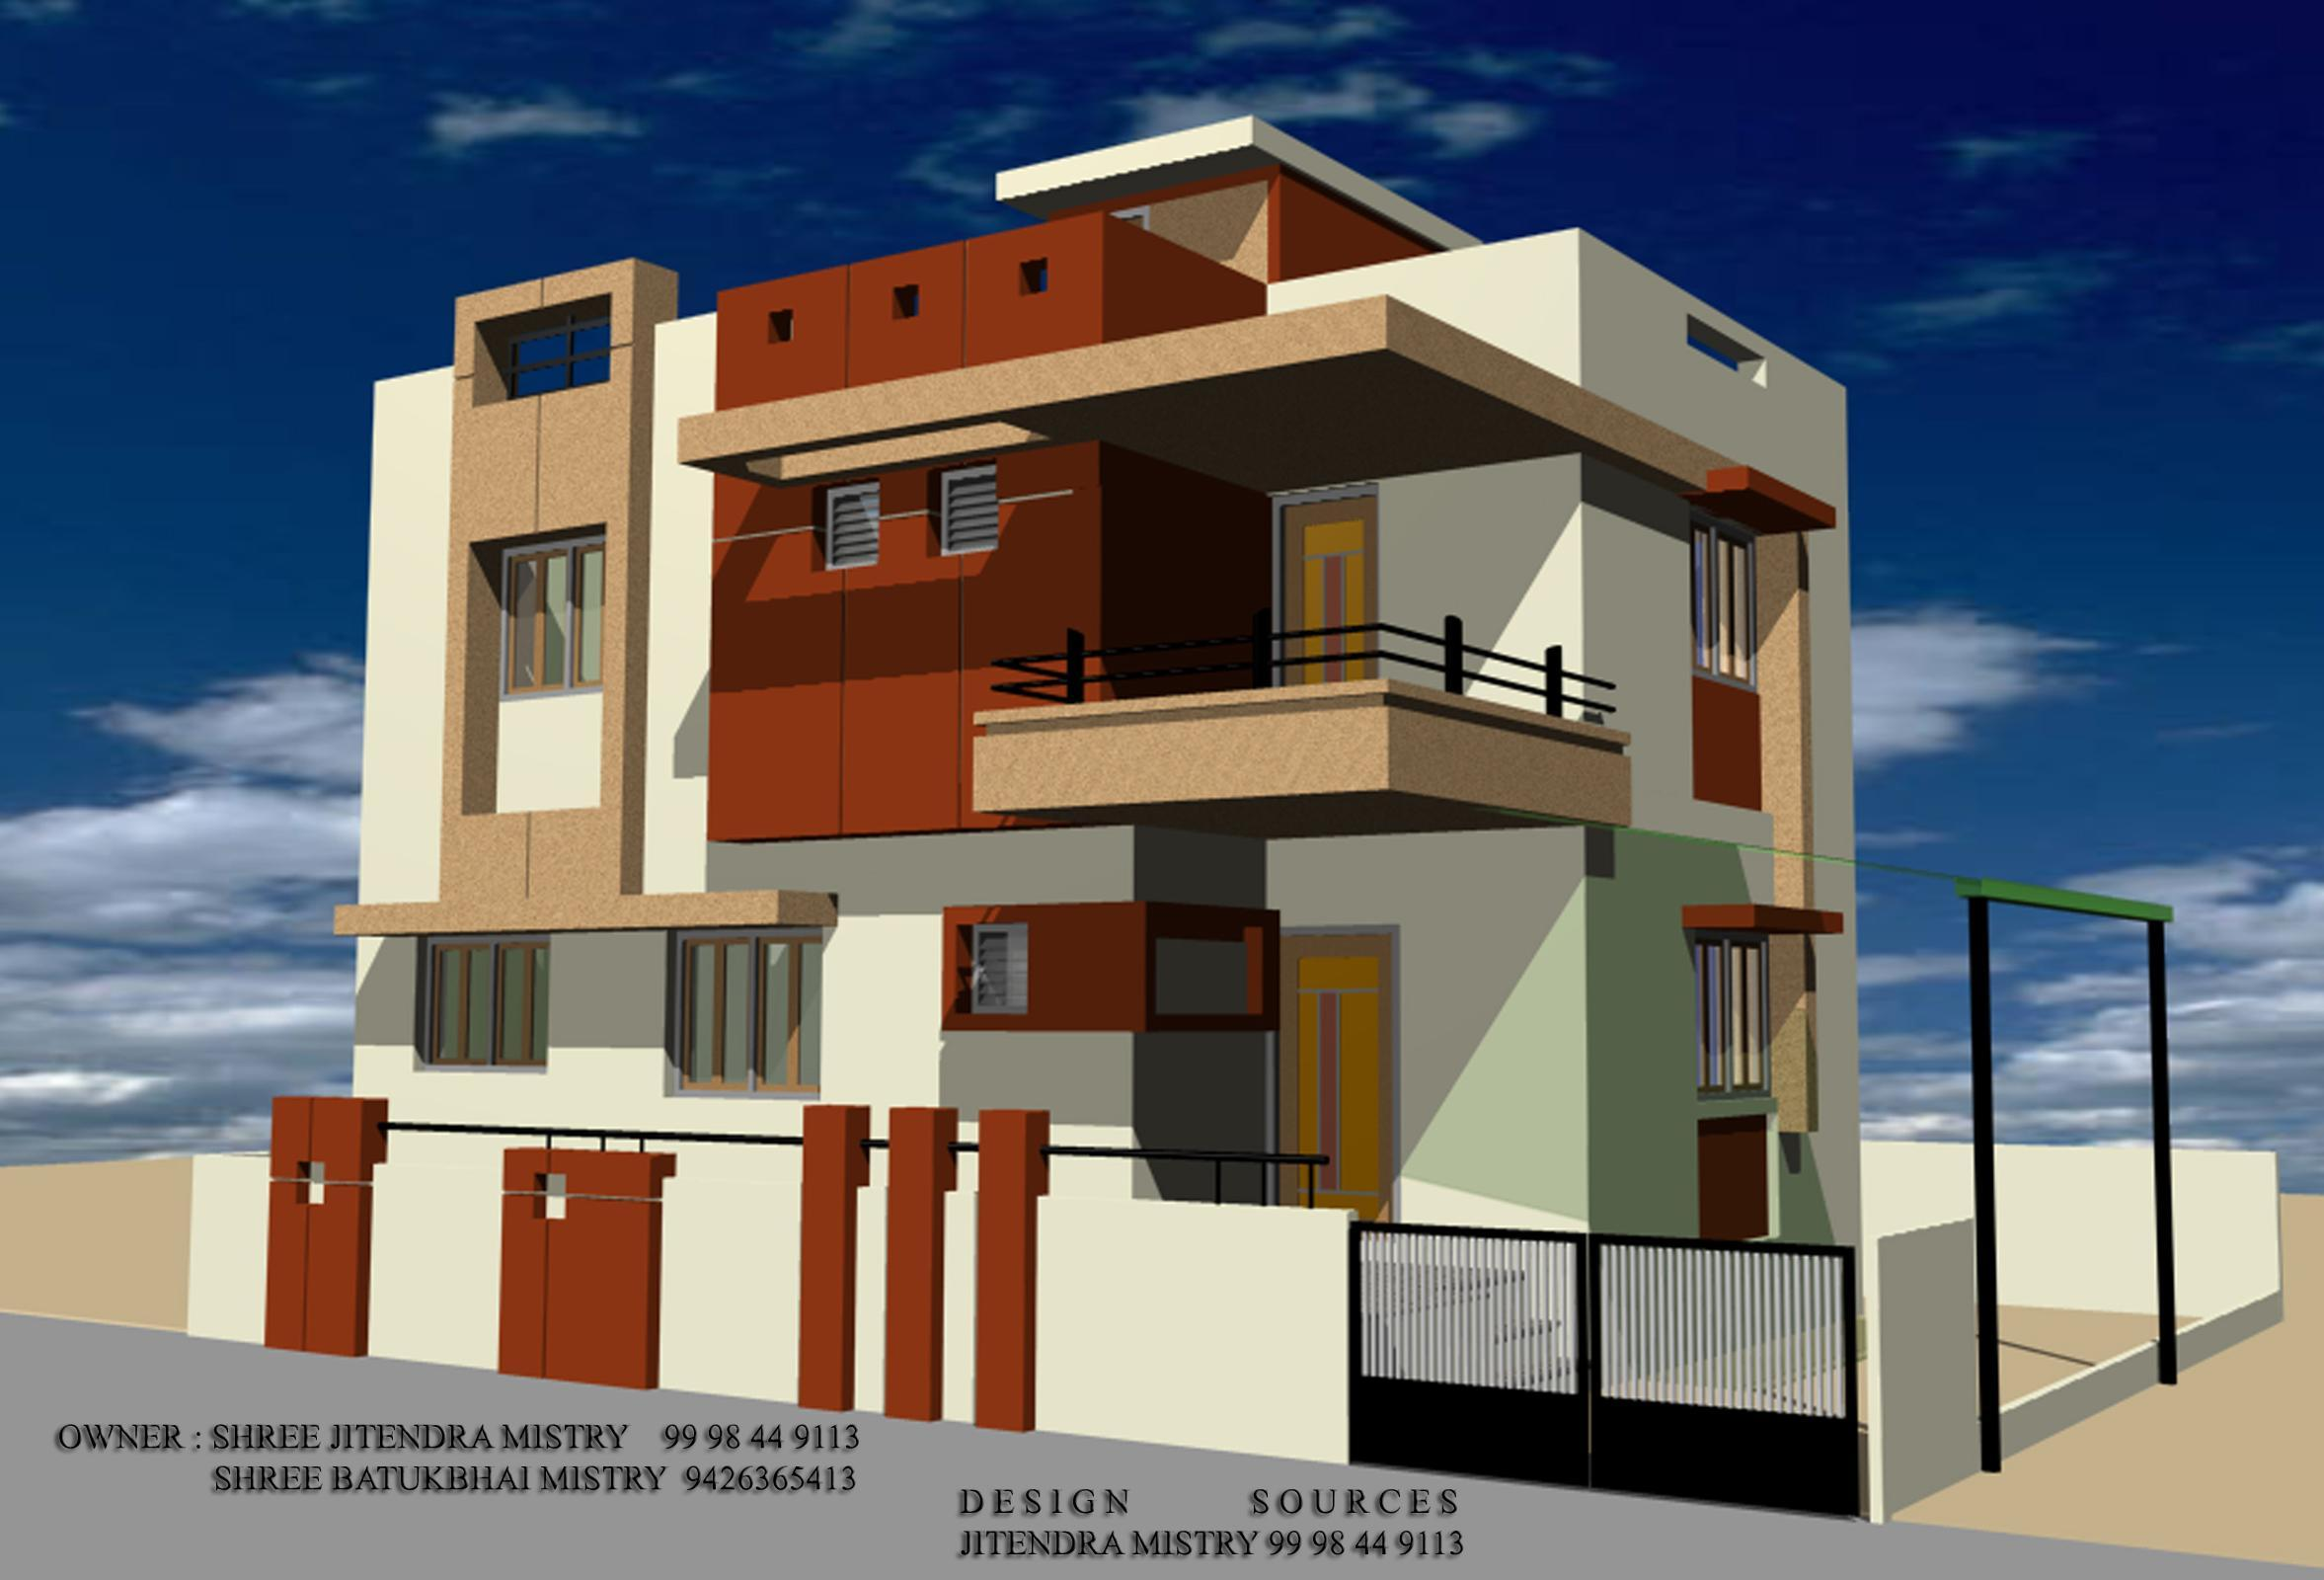 Home Building Front Elevation Designs : Home design front elevation images modern house